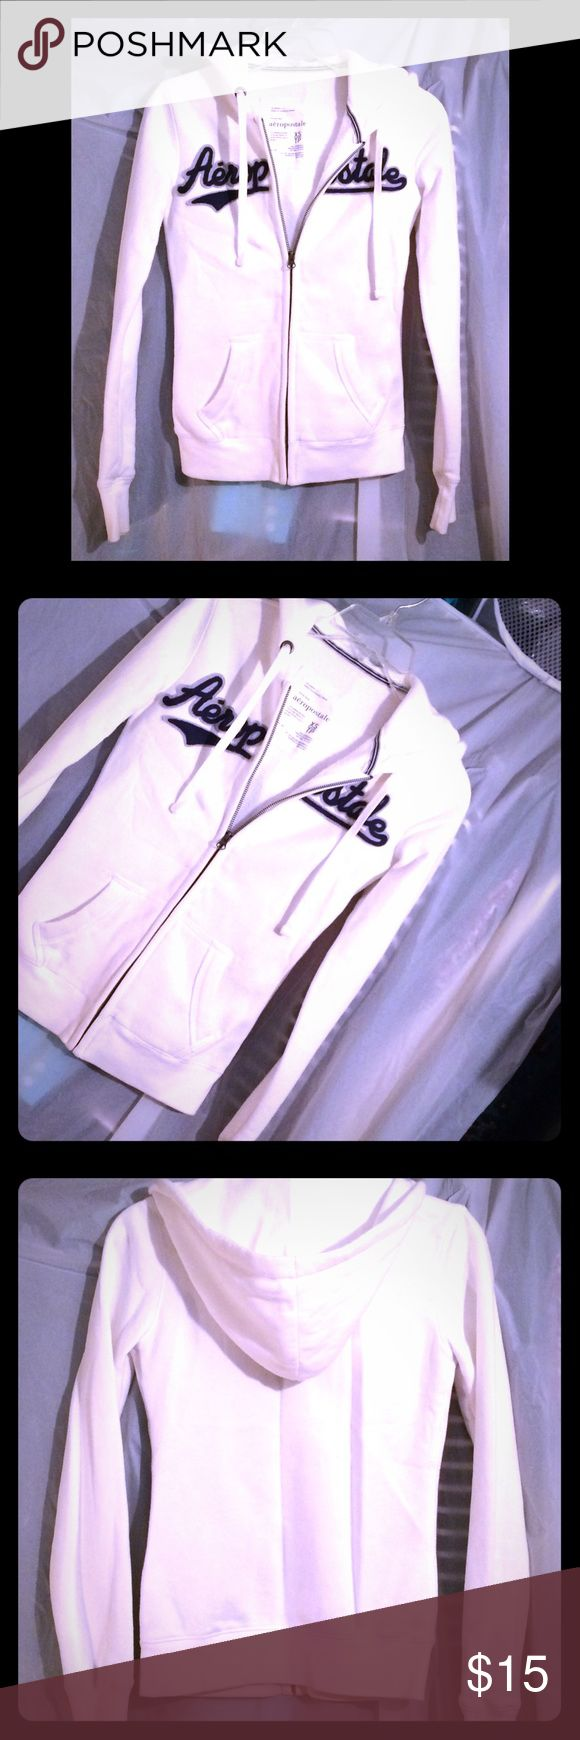 NWOT White and navy Aeropostale Hoodie- XS White zip up hoodie with navy blue and heather gray graphics that spell AEROPOSTALE. Aeropostale Tops Sweatshirts & Hoodies